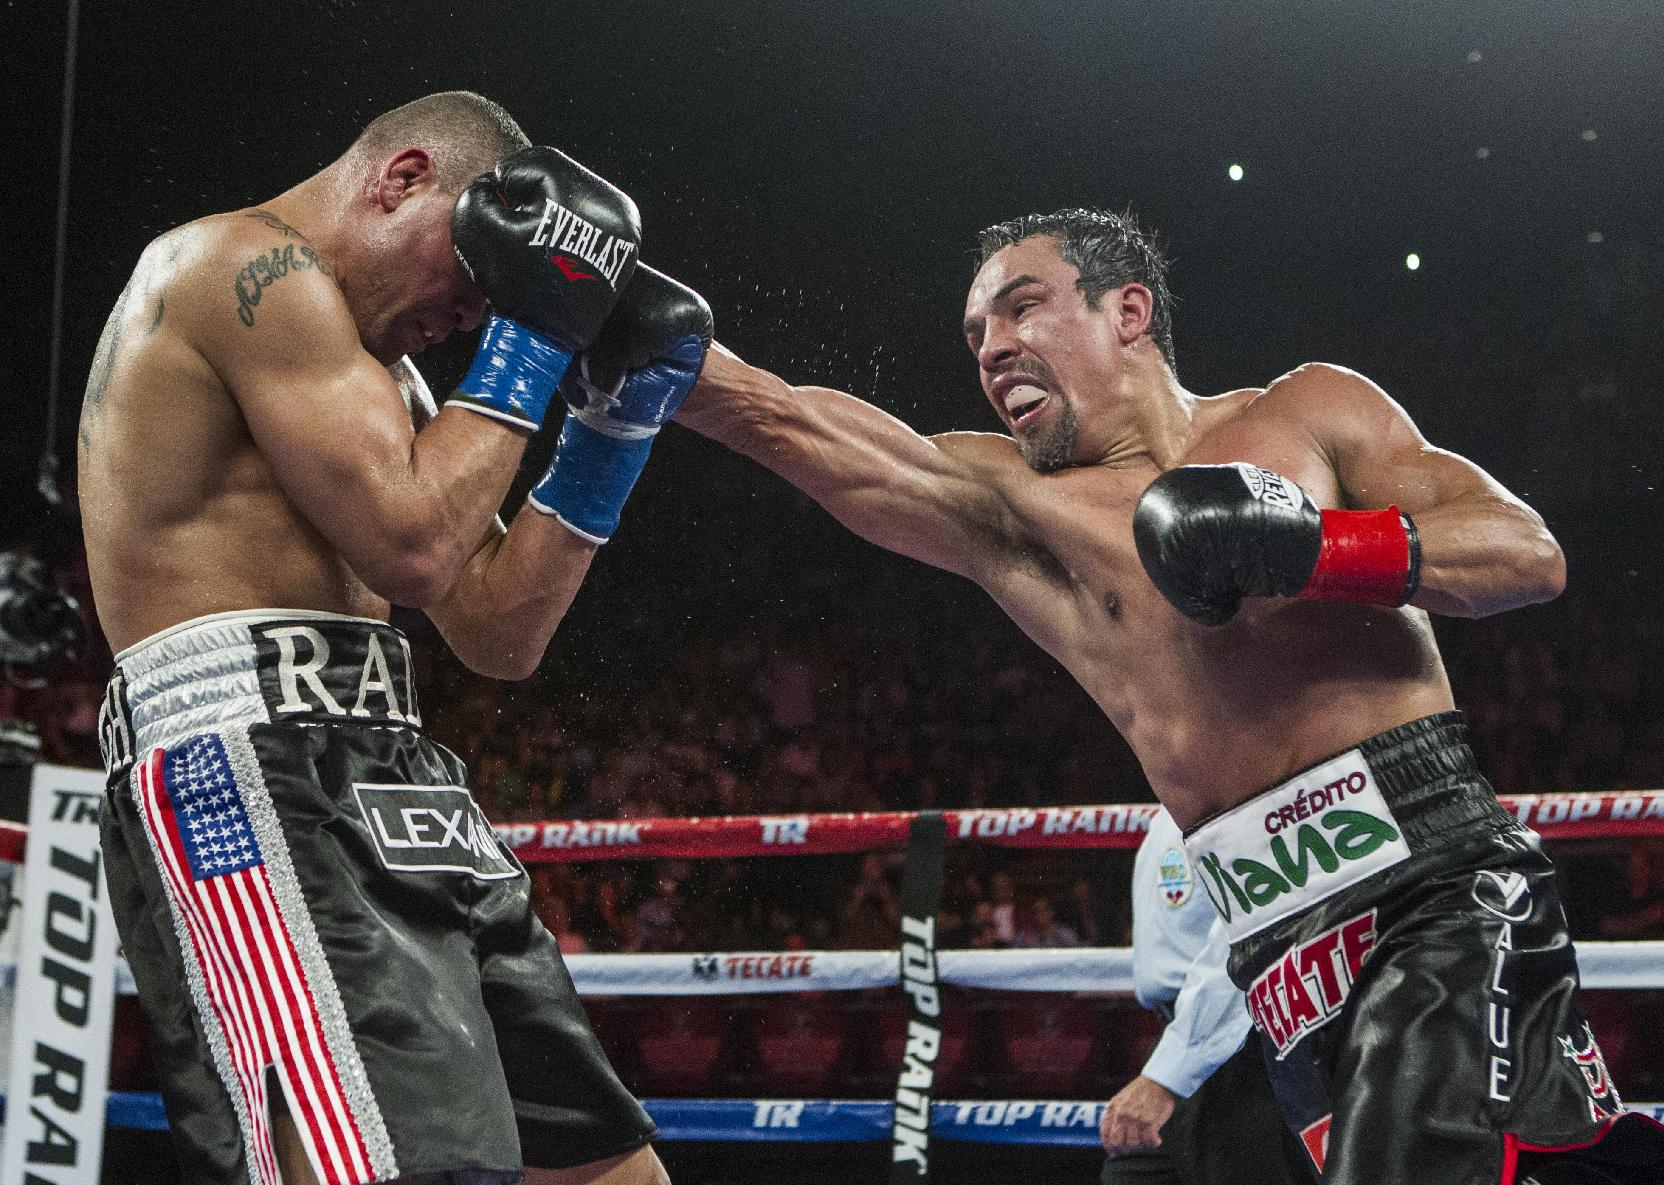 Juan Manuel Mrquez, right, of Mexico, lands a punch against Mike Alvarado in the fifth round of a WBO welterweight title boxing match at the Forum in Inglewood, Calif., Saturday, May 17, 2014. Mrquez won the title